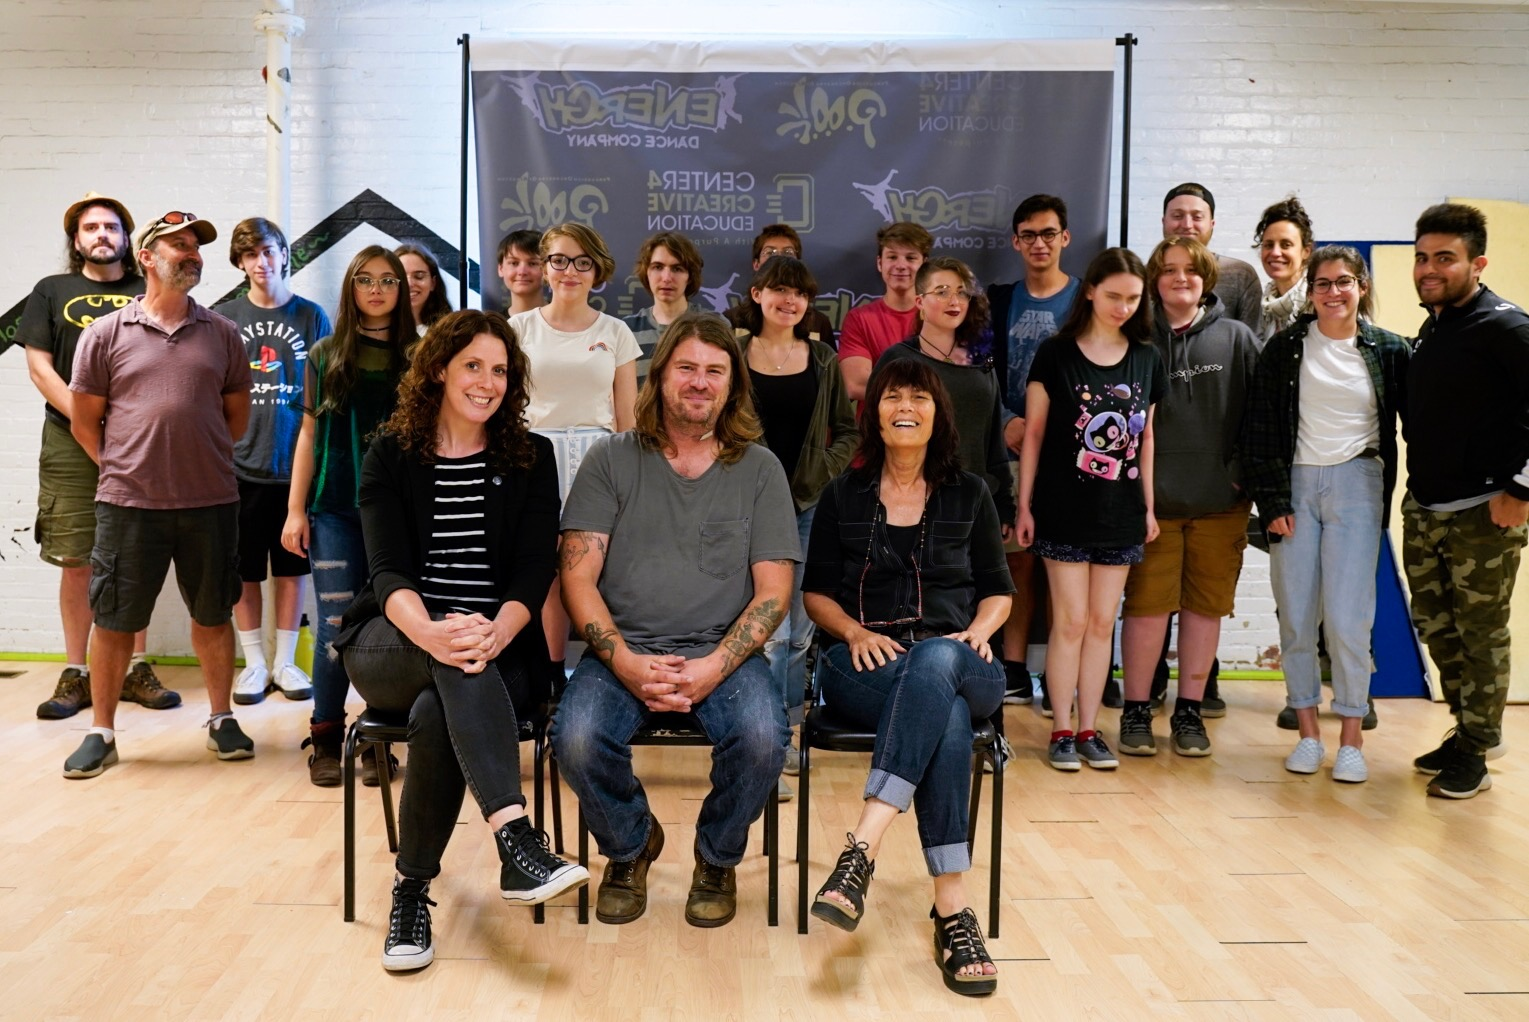 Michael Simmonds with the students and mentors of the Youth Film Lab.